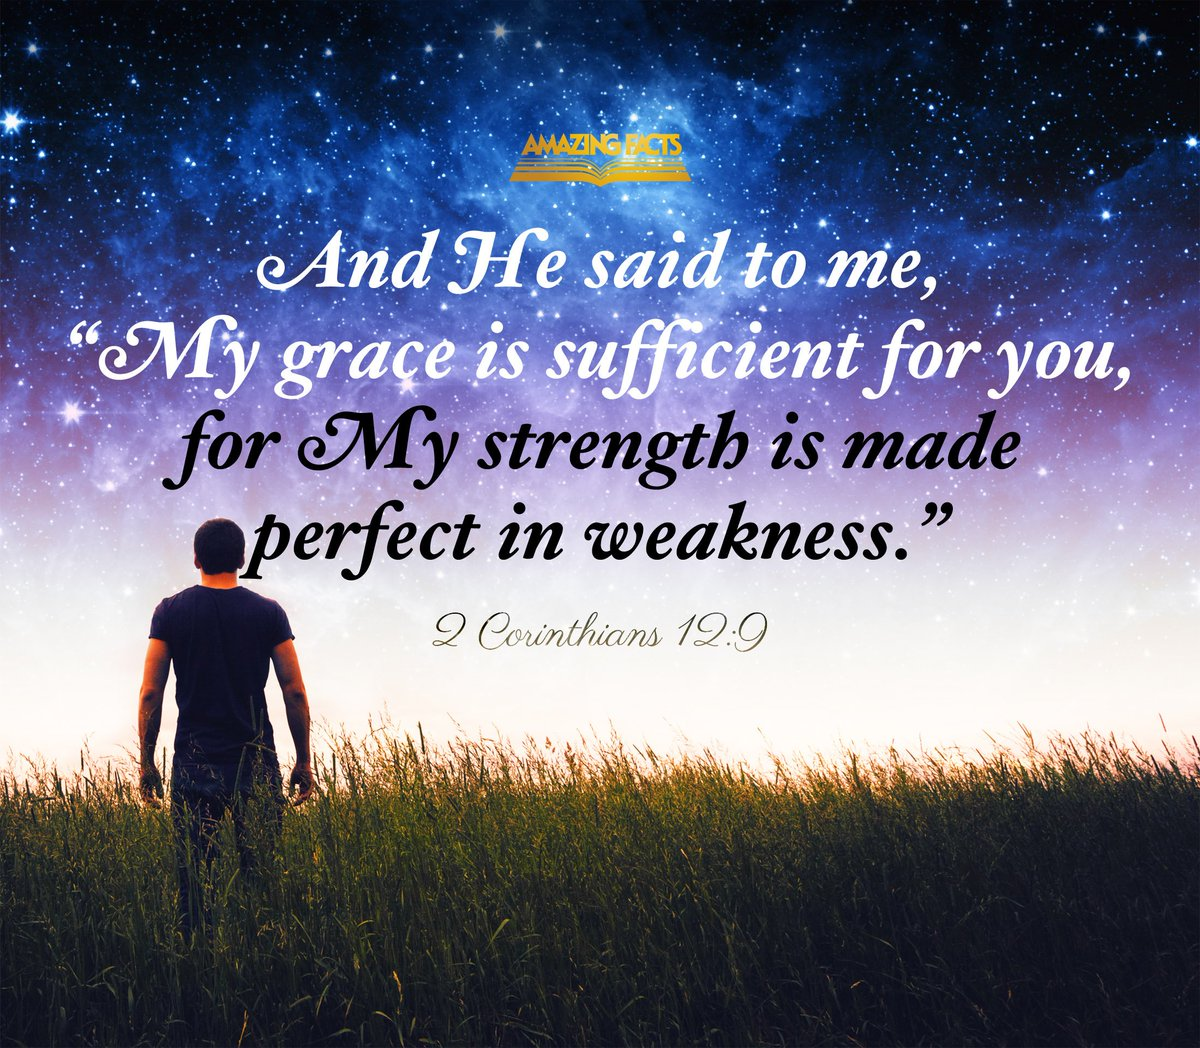 His grace is sufficient. Count on it this week. #ScripturePicture